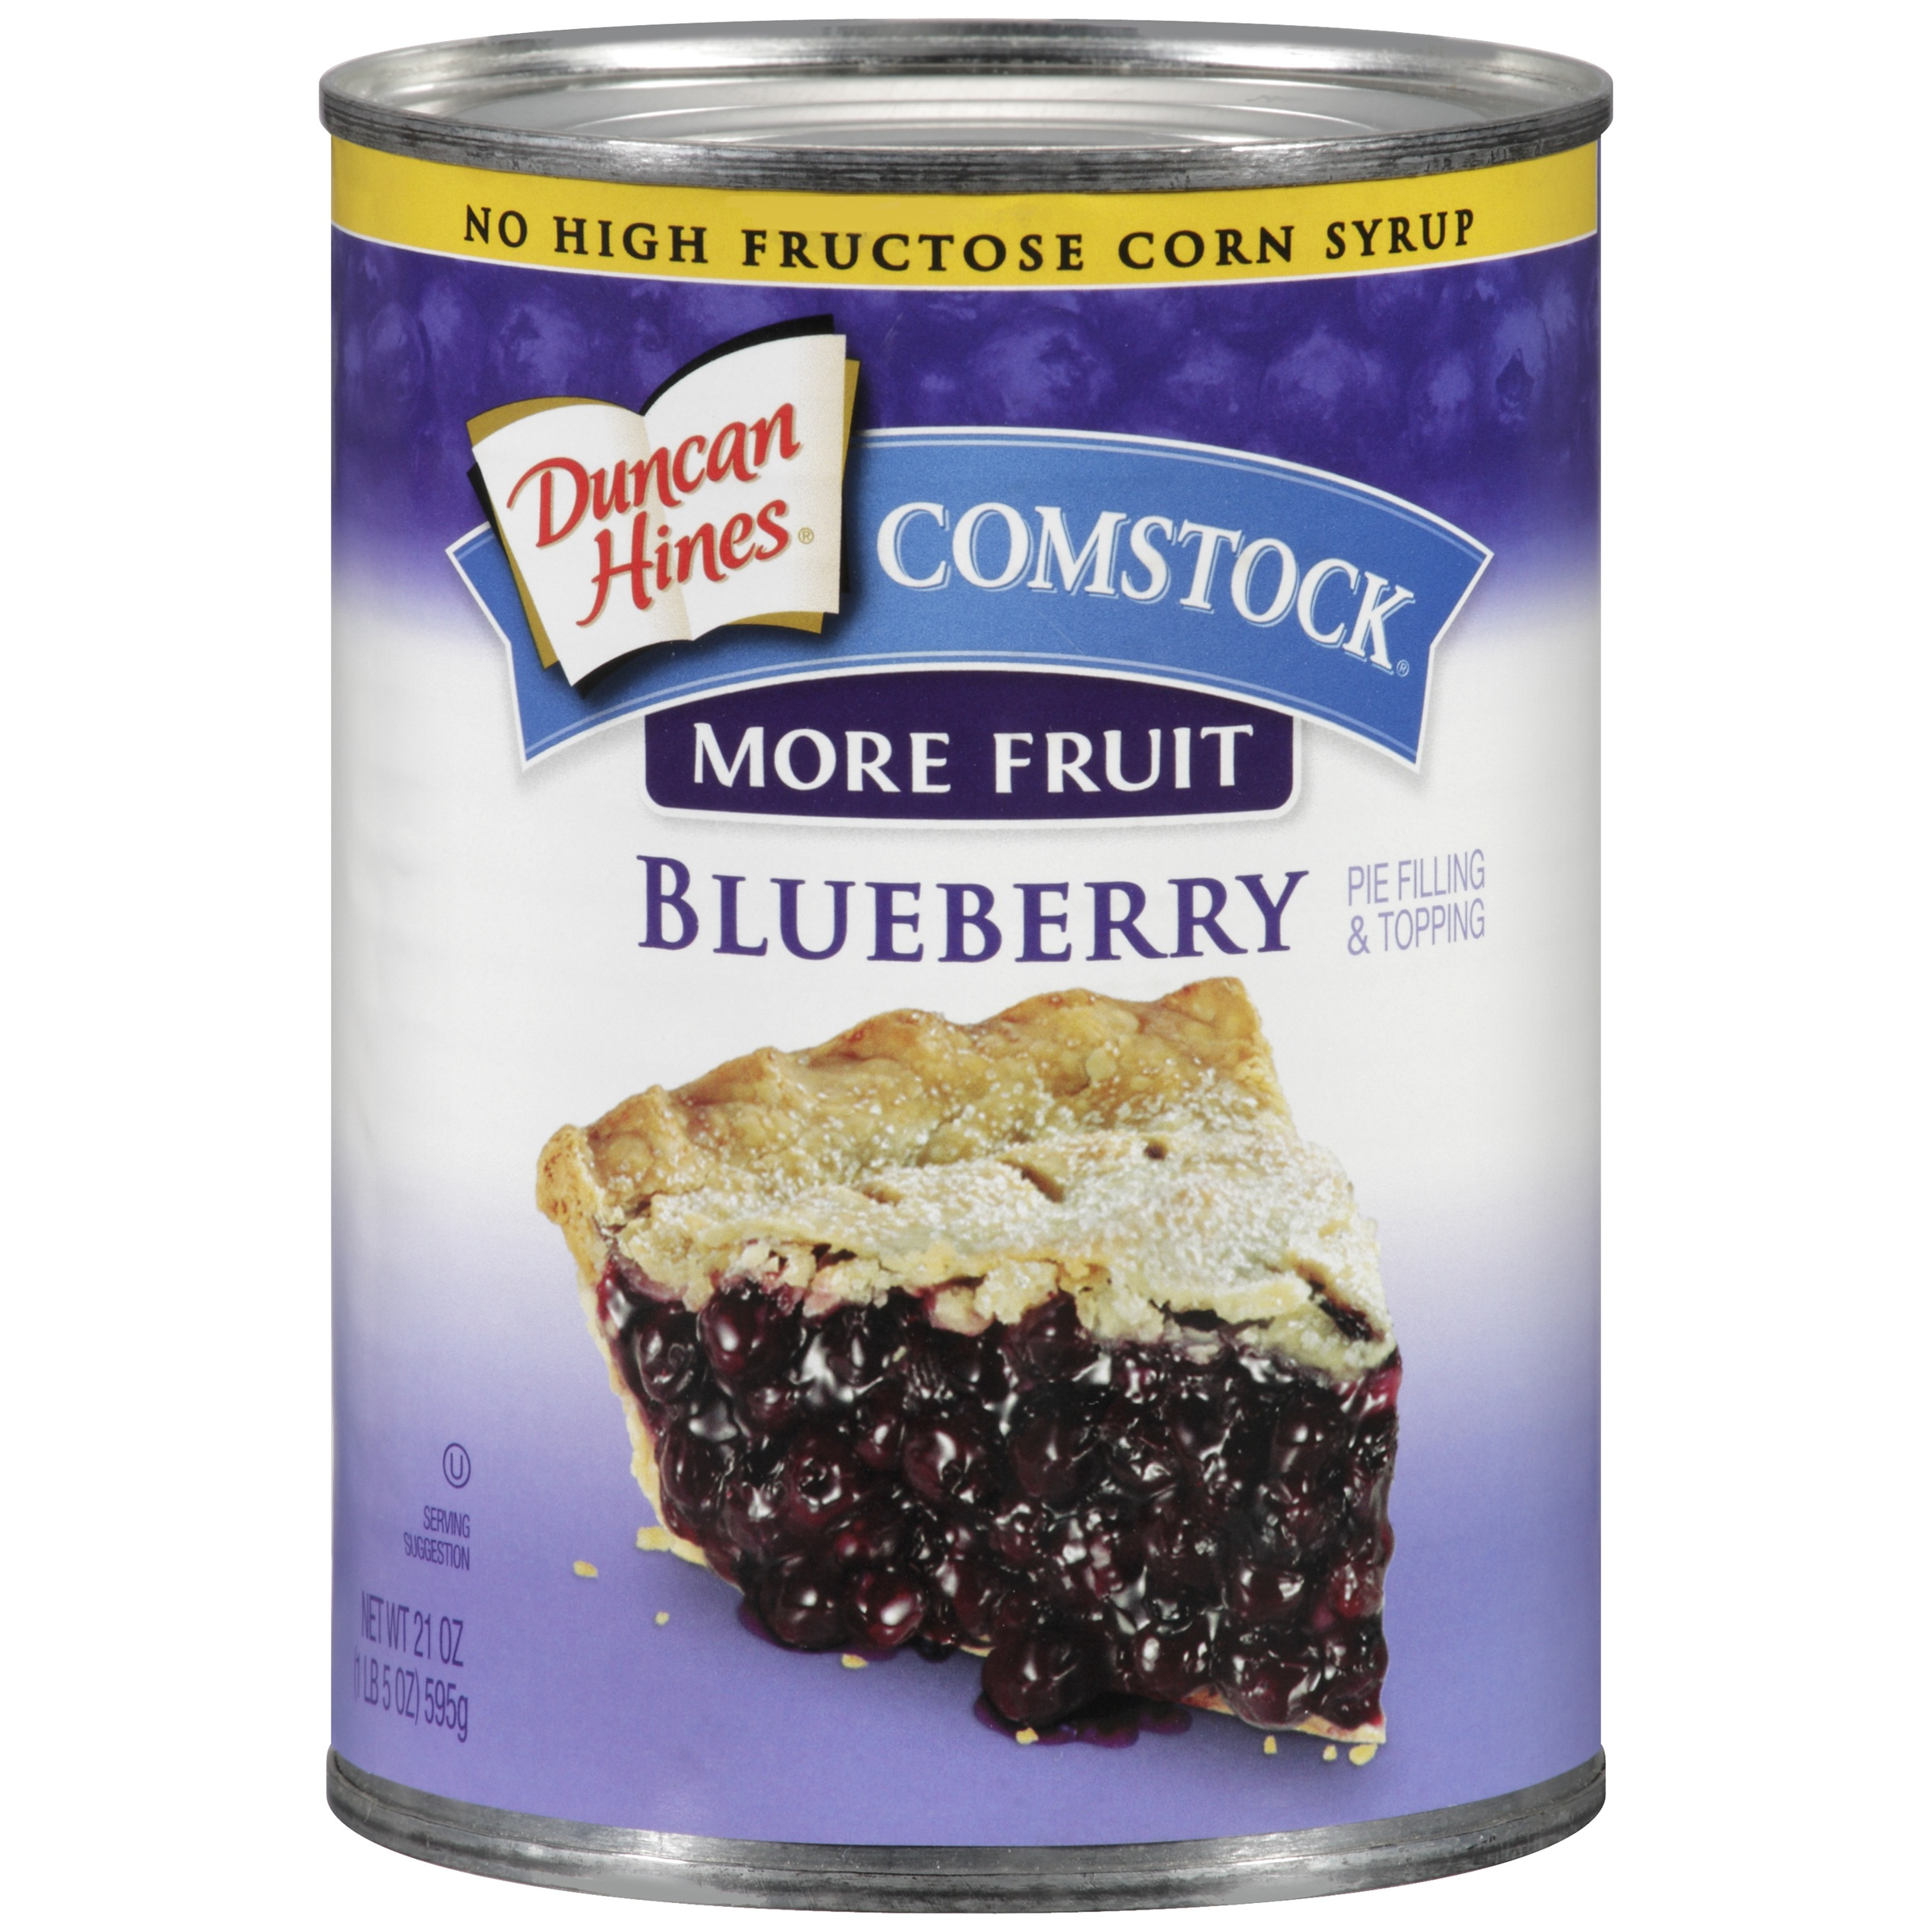 Comstock More Fruit Blueberry Pie Filling Or Topping, 21 oz